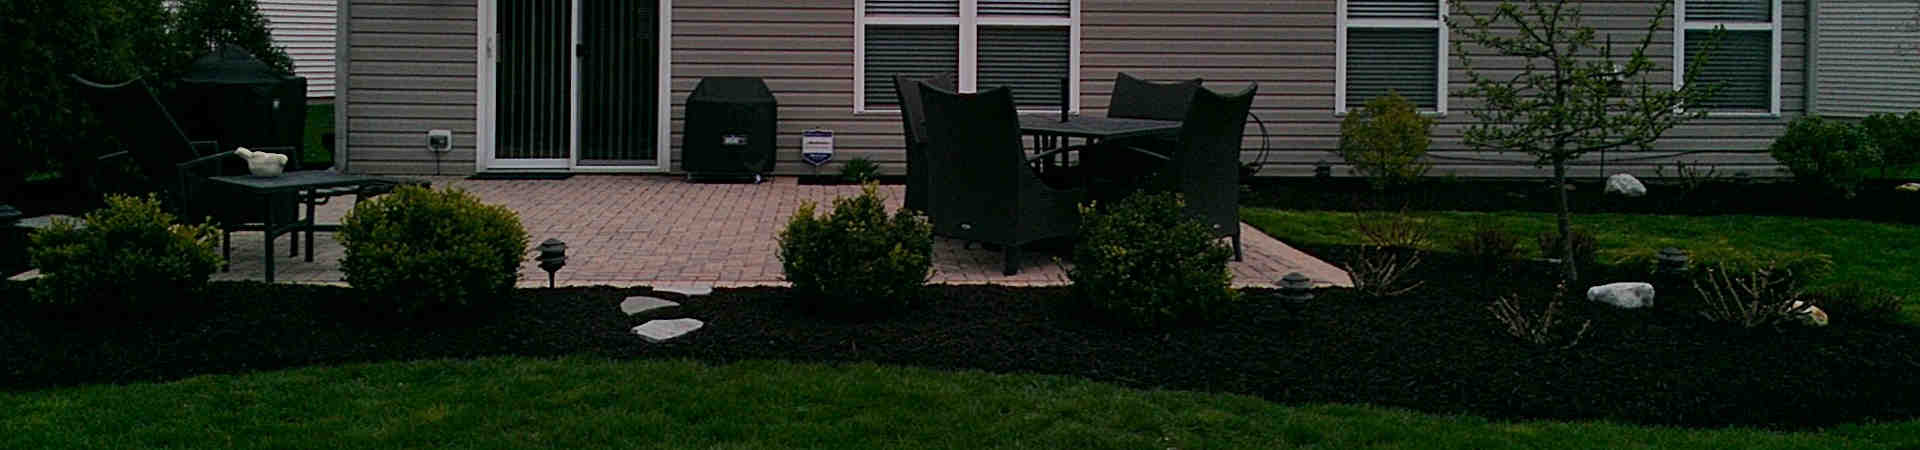 Mulch Installation in Sandstone Village, Fishers, IN (slider2)